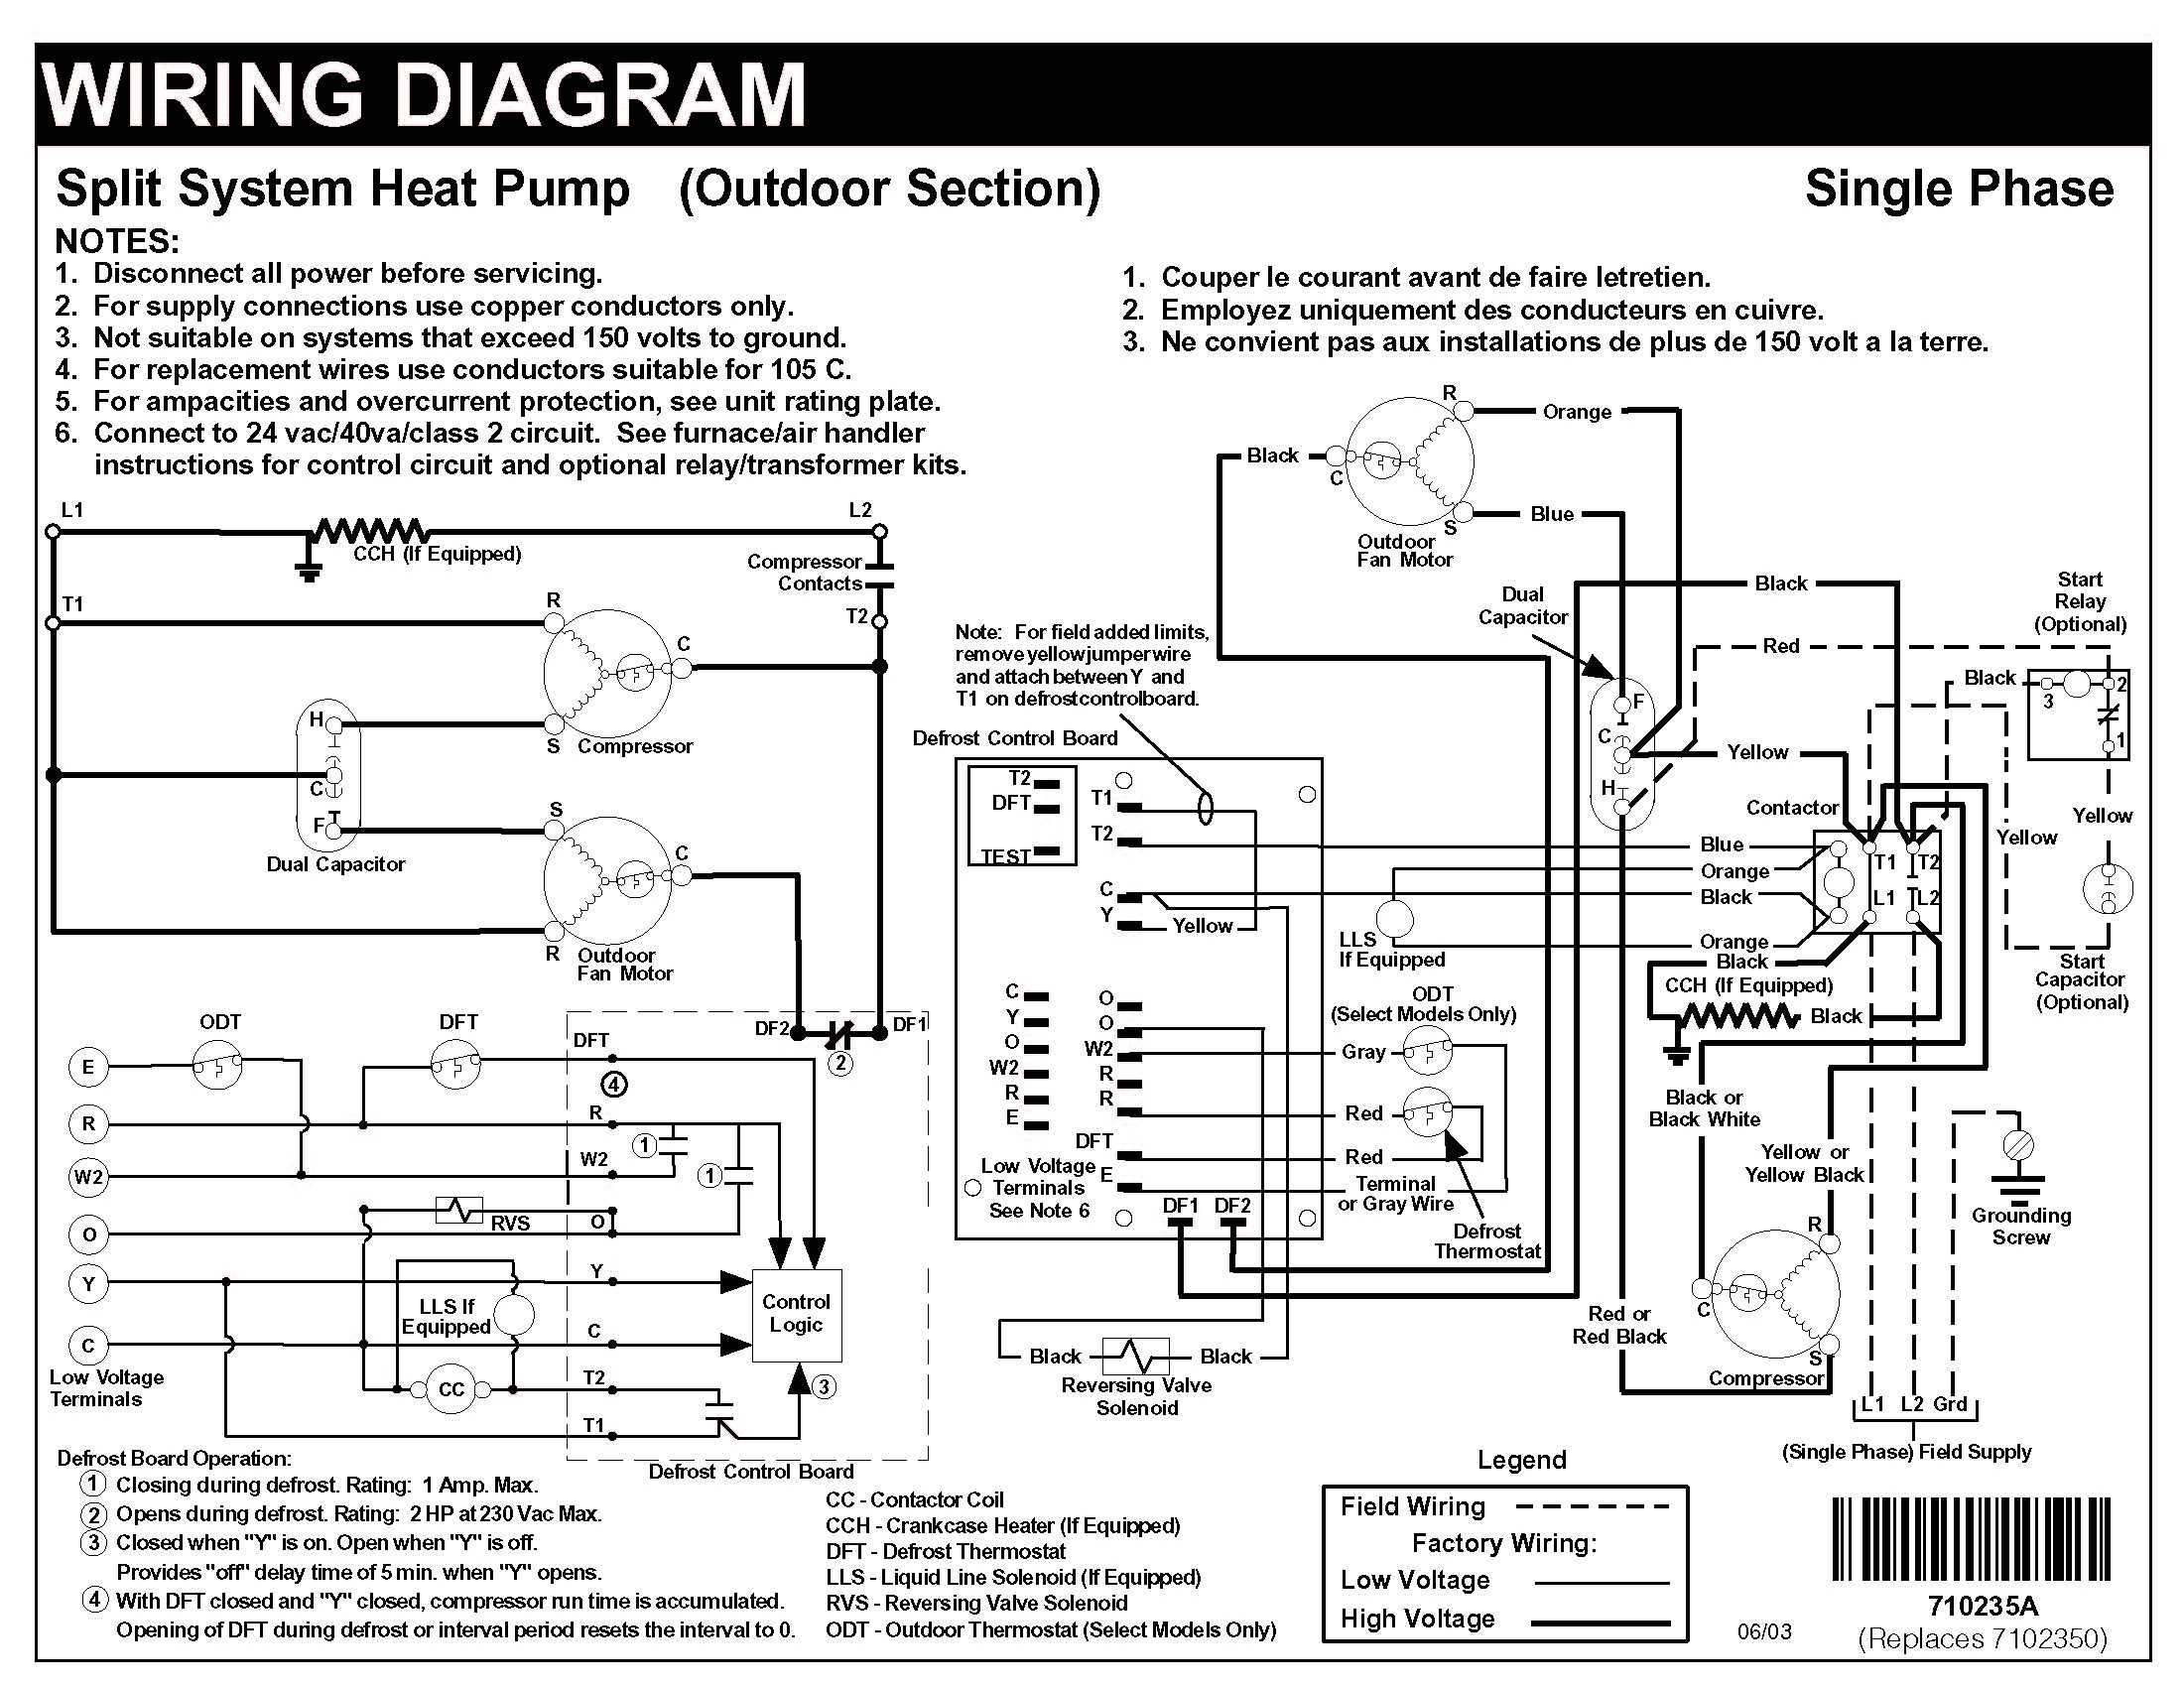 hrk heating hvac wiring diagrams train hvac wiring diagrams #14